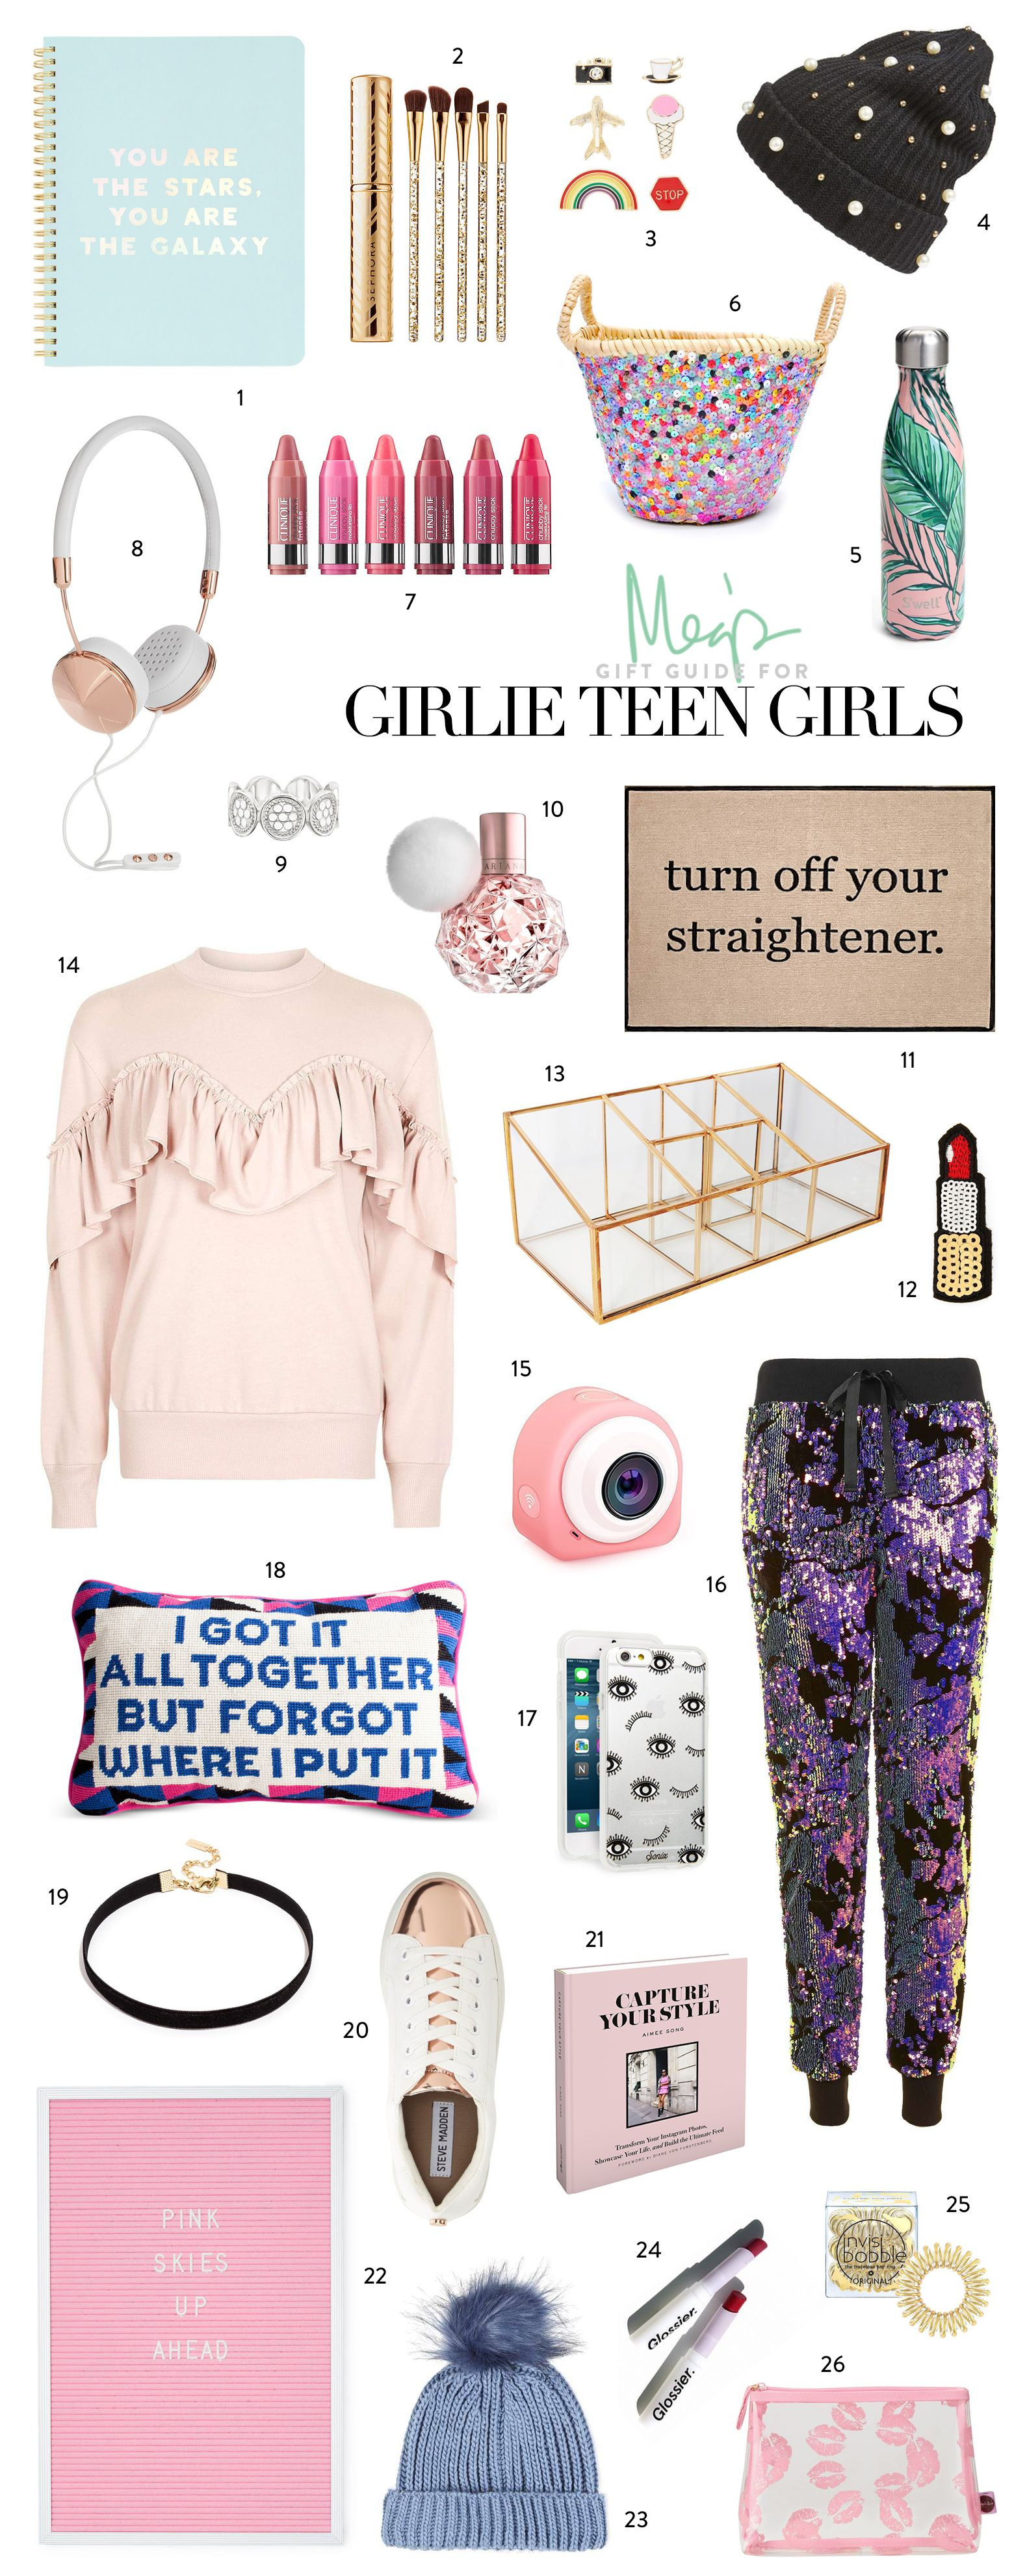 Best ideas about Teen Birthday Gift Ideas . Save or Pin Holiday Gift Guide Girlie Teen Girls Now.